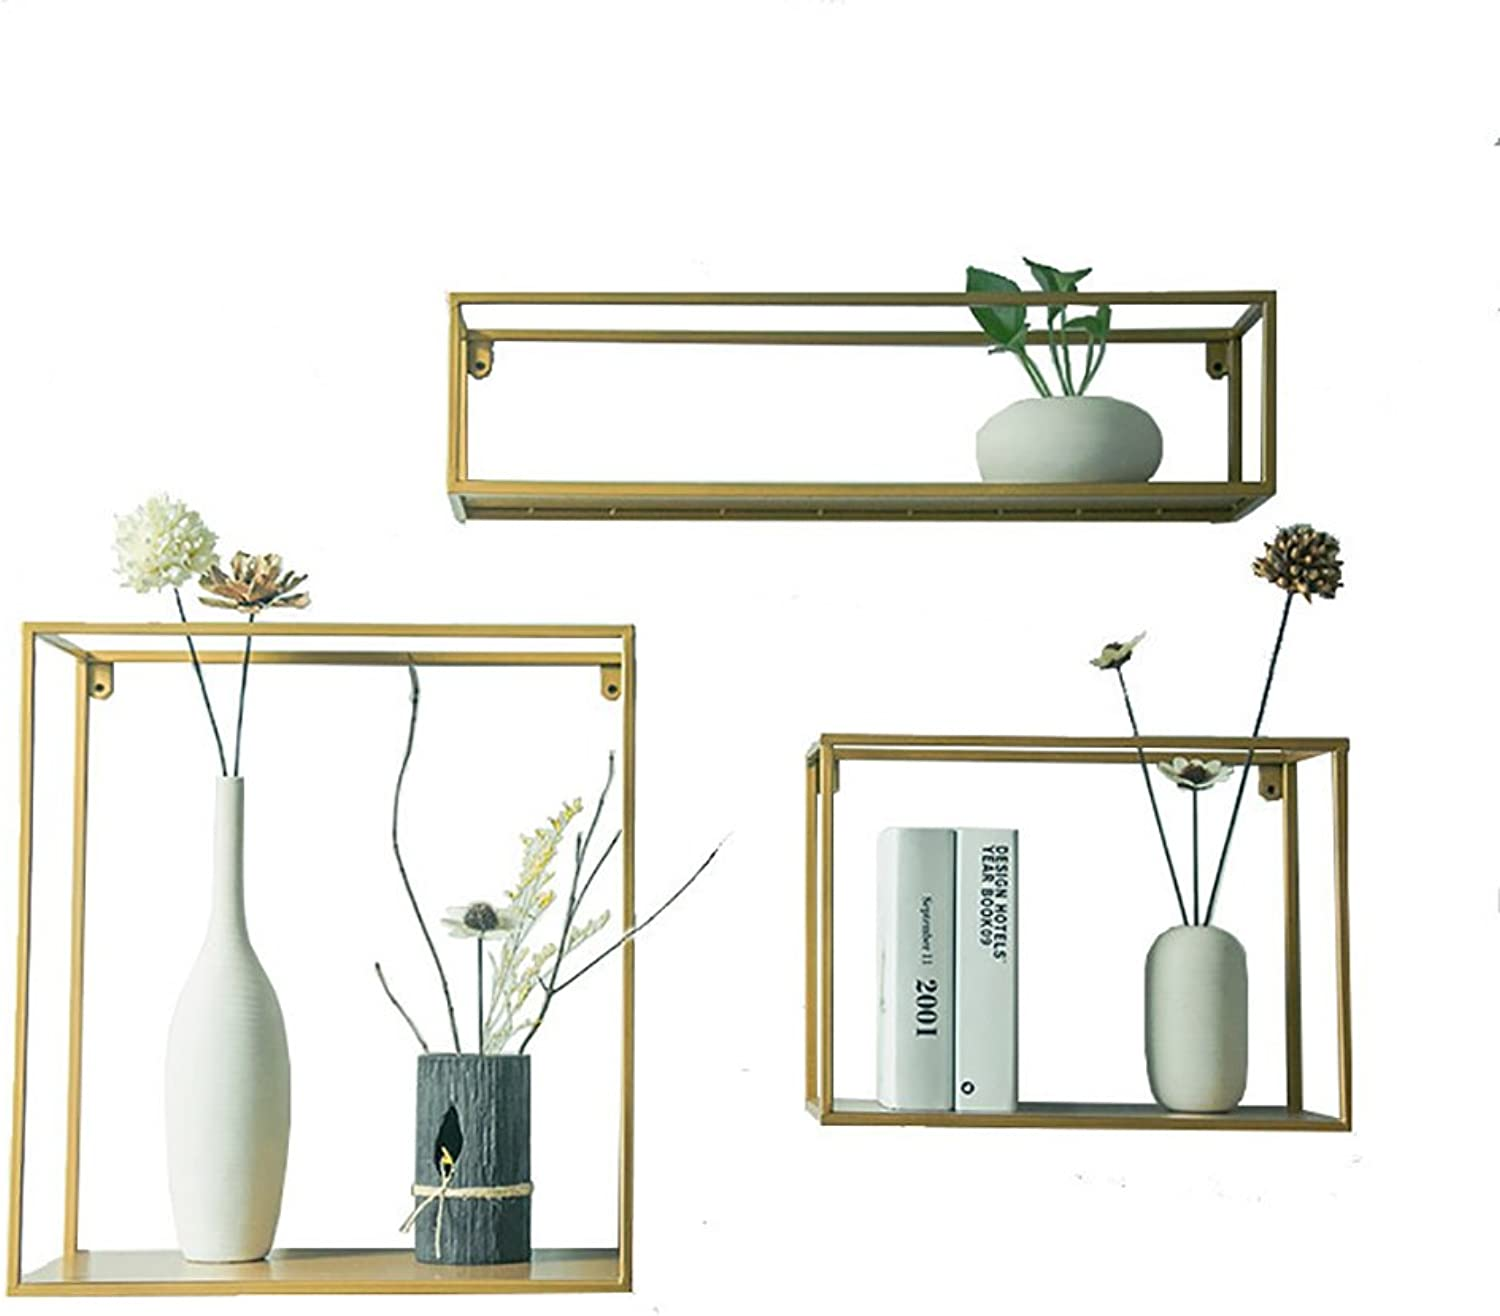 Wall Decoration Retro Bookshelf Wall Decoration Wall-Mounted Living Room Square Iron Wall Frame Shelf (color   gold, Size   2)